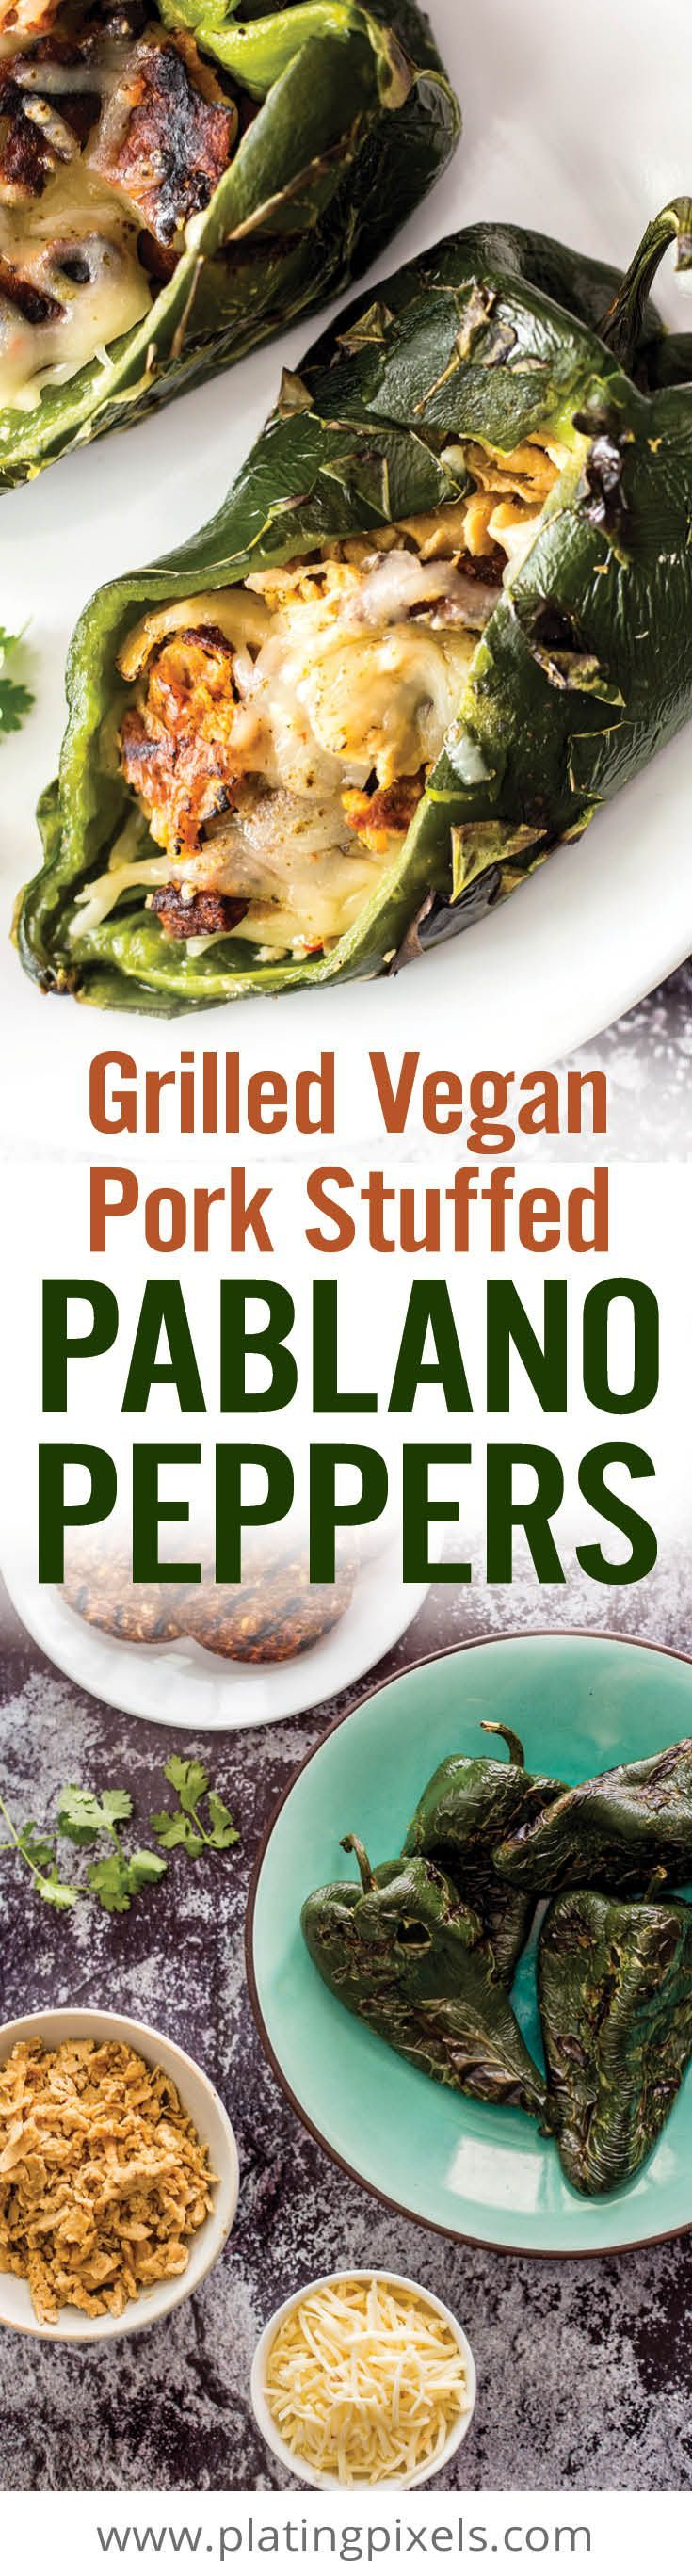 Grilled Vegan Pork Stuffed Poblano Peppers are an easy vegan summer grilling recipe. Poblano peppers stuffed with 'pork', black beans, cheese and avocado. [ad]  #VeggieSummerGrilling - www.platingpixels.com